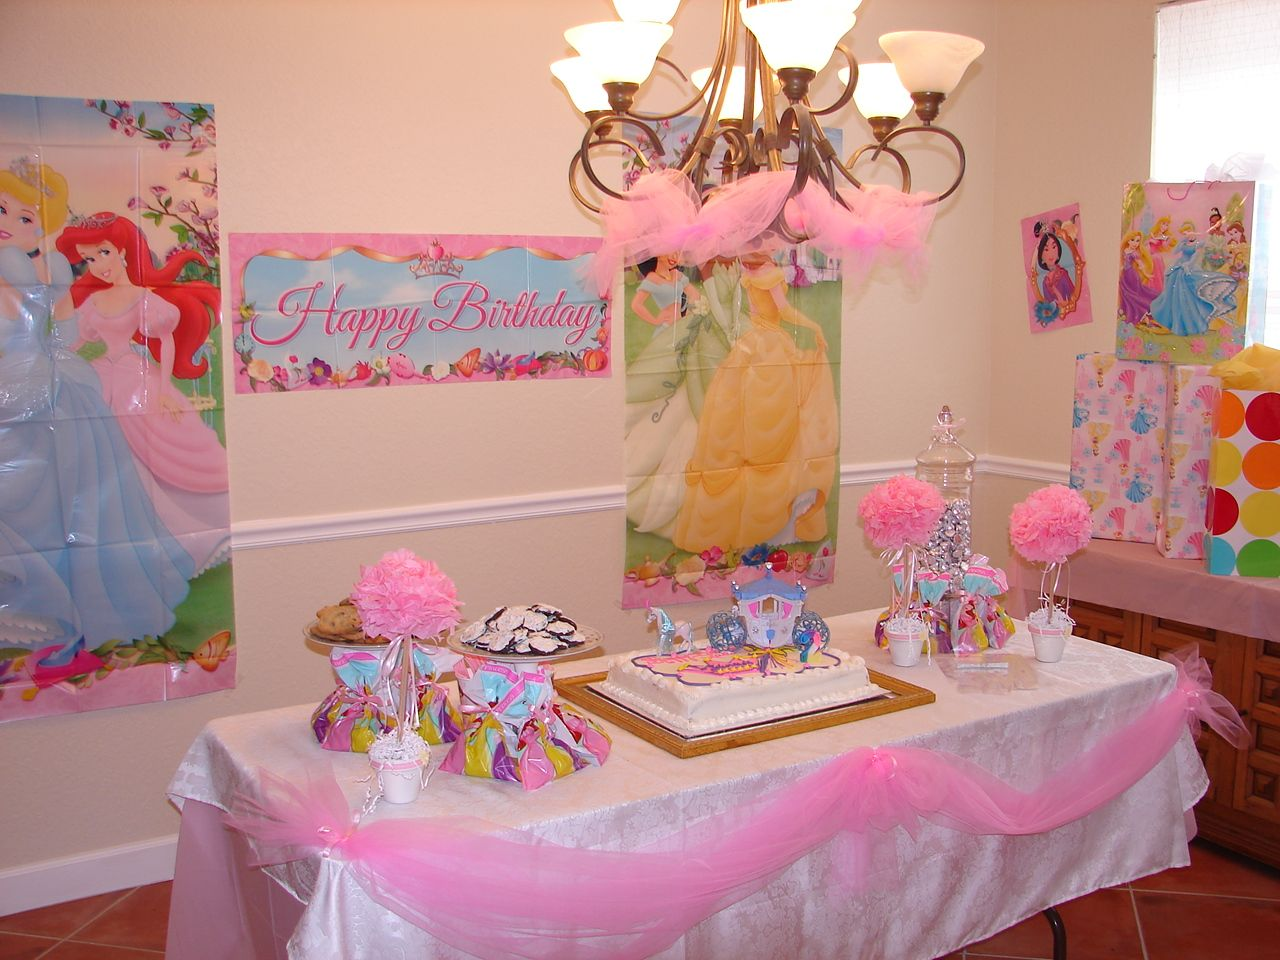 Birthday Cake Table Decoration Ideas : Princess party cake table decorations. party favors ...